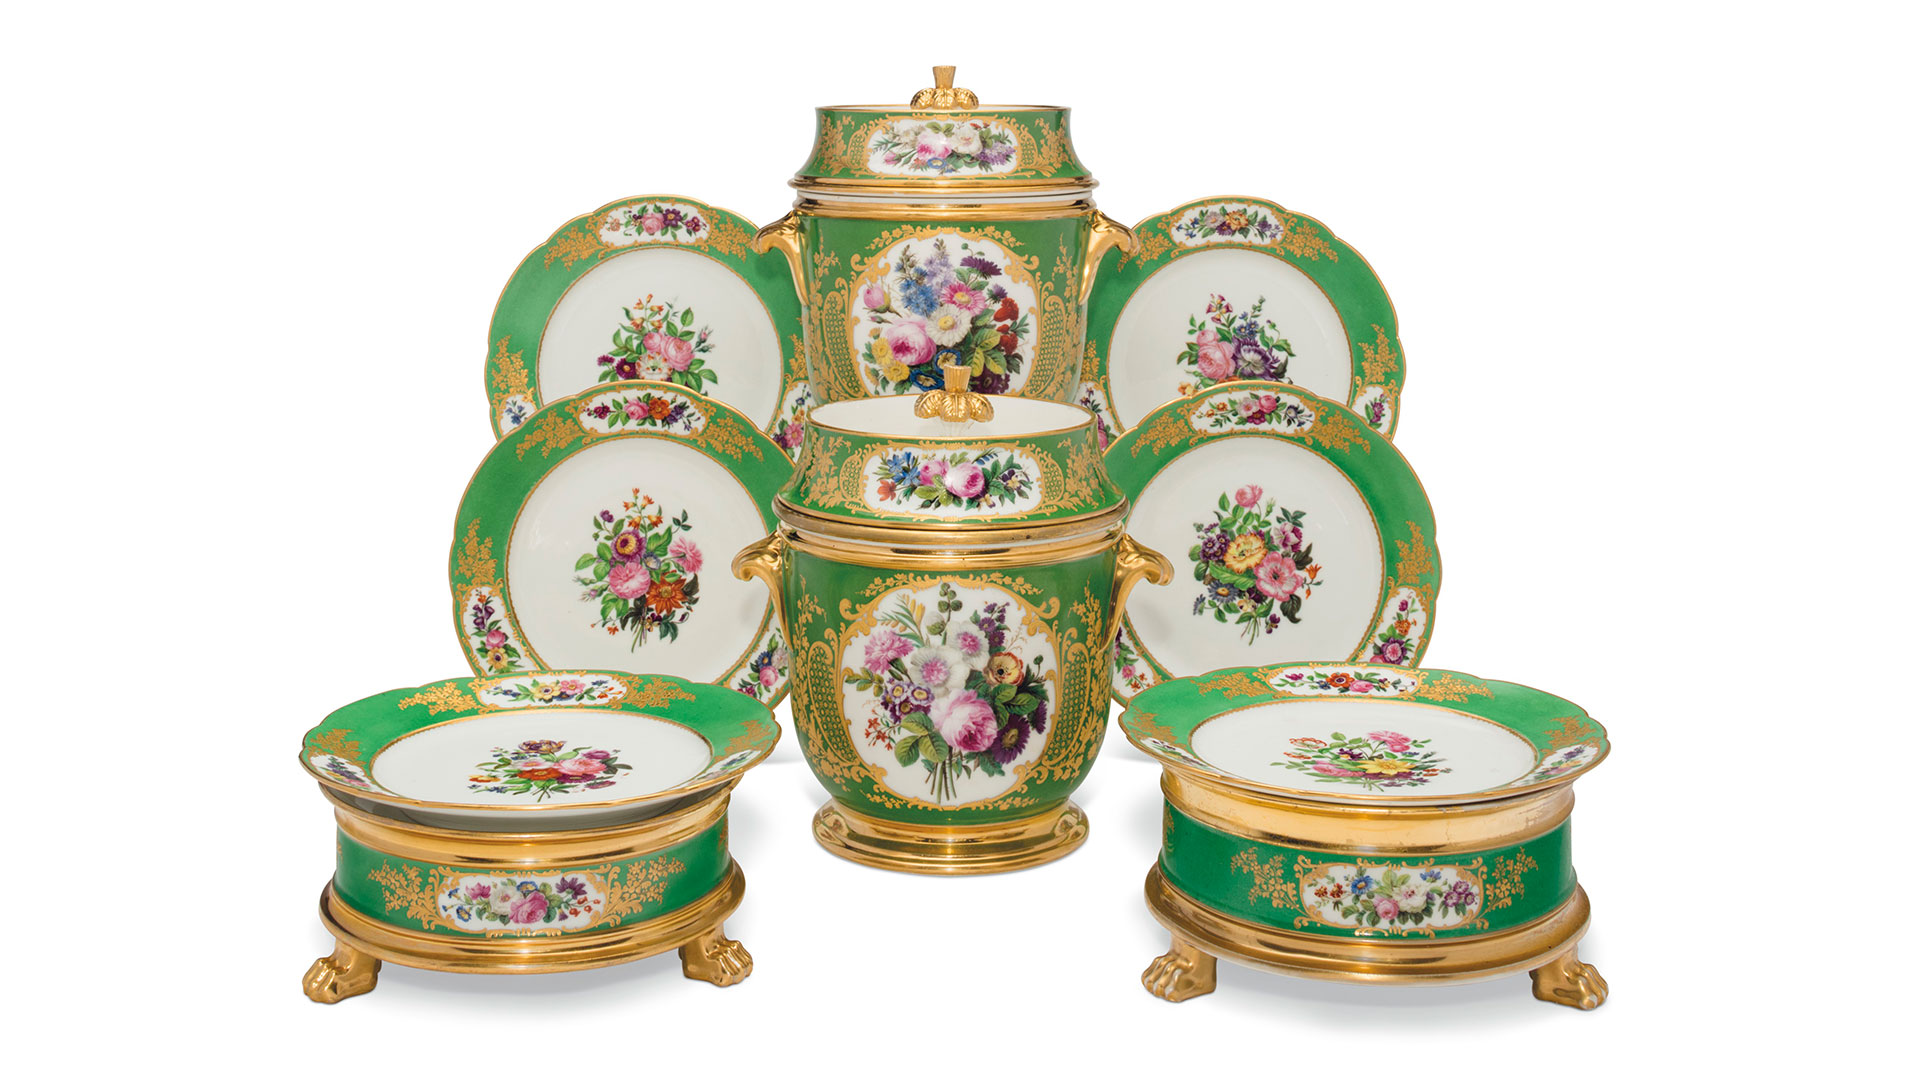 Paris green ground porcelain dessert service, circa 1820